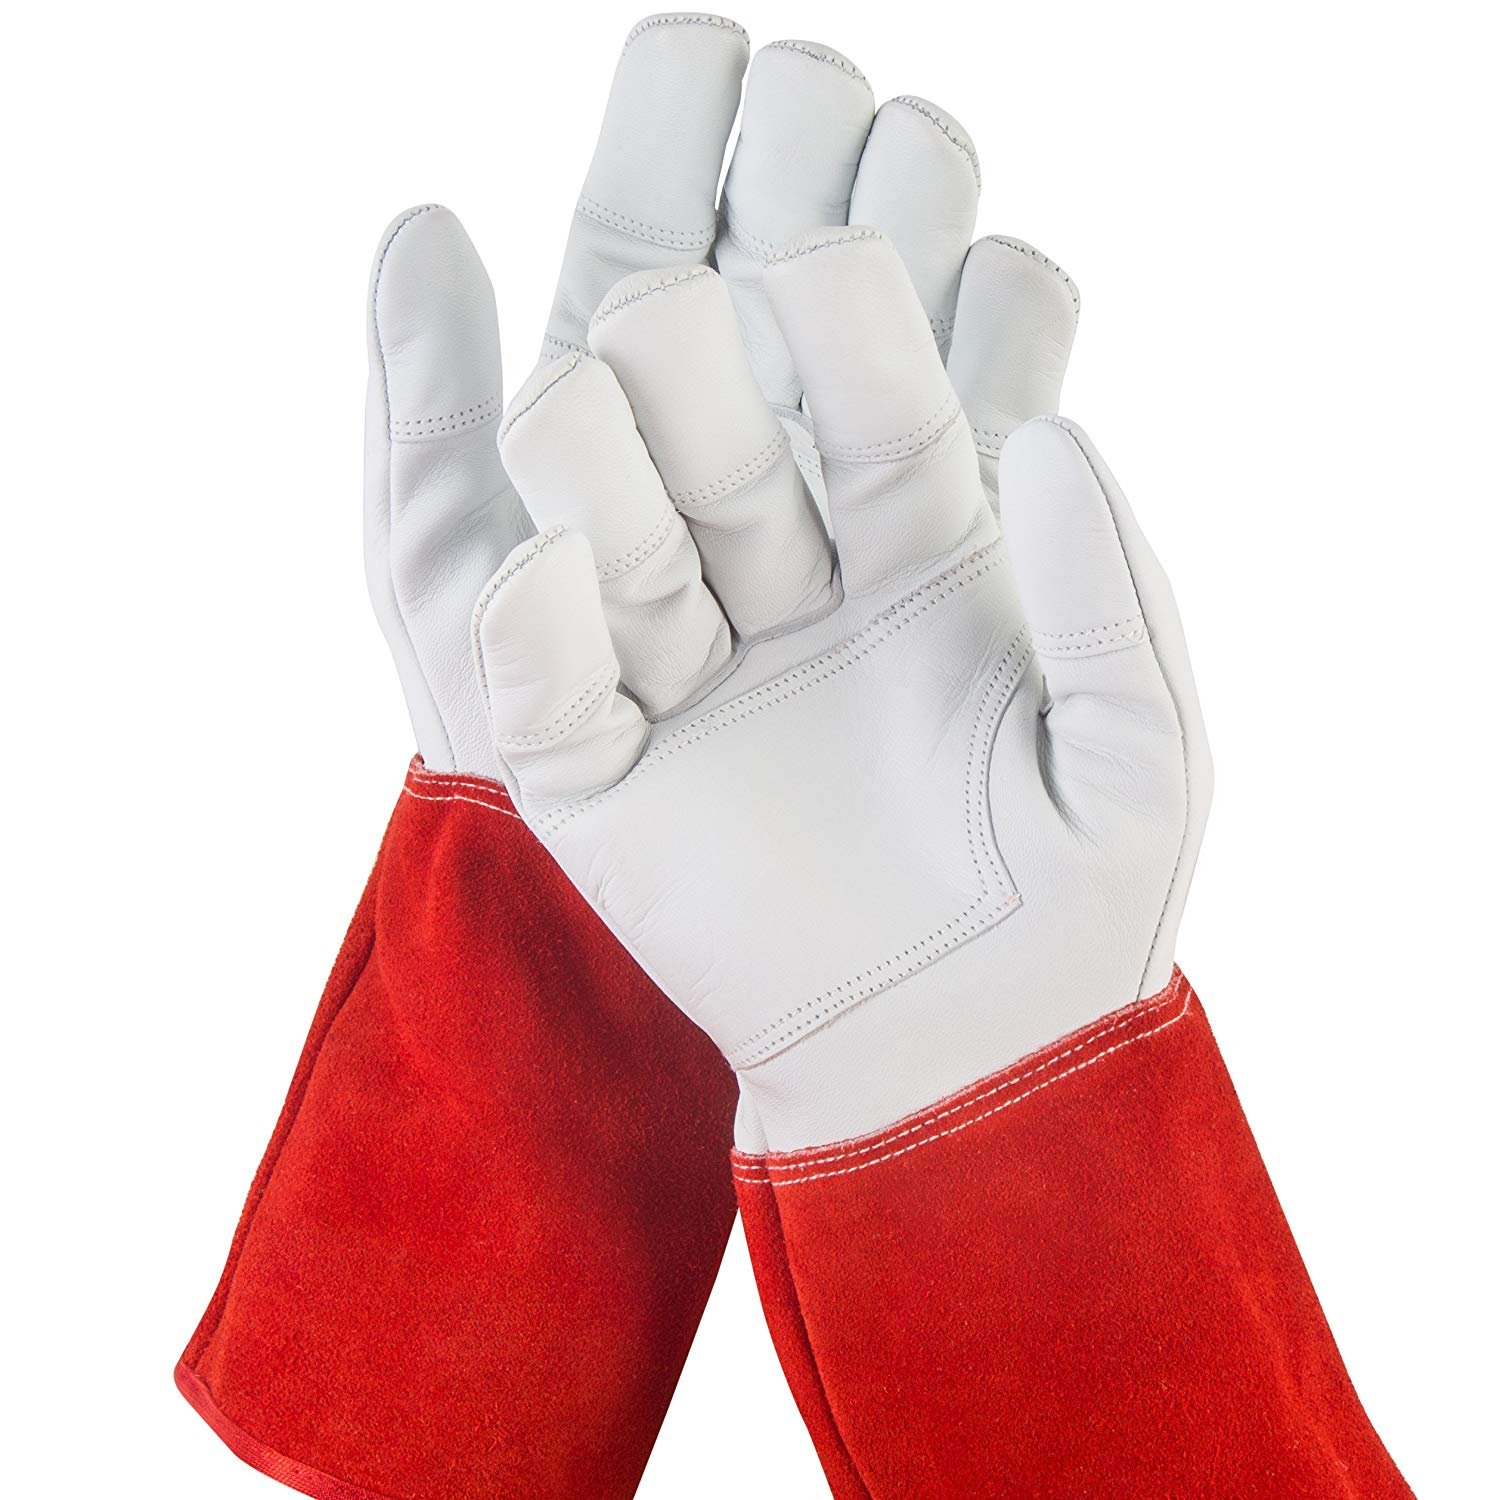 NoCry Rose Pruning Gloves - Puncture Resistant with Extra Long Forearm Protection and Reinforced Palms and Fingertips, Size Small